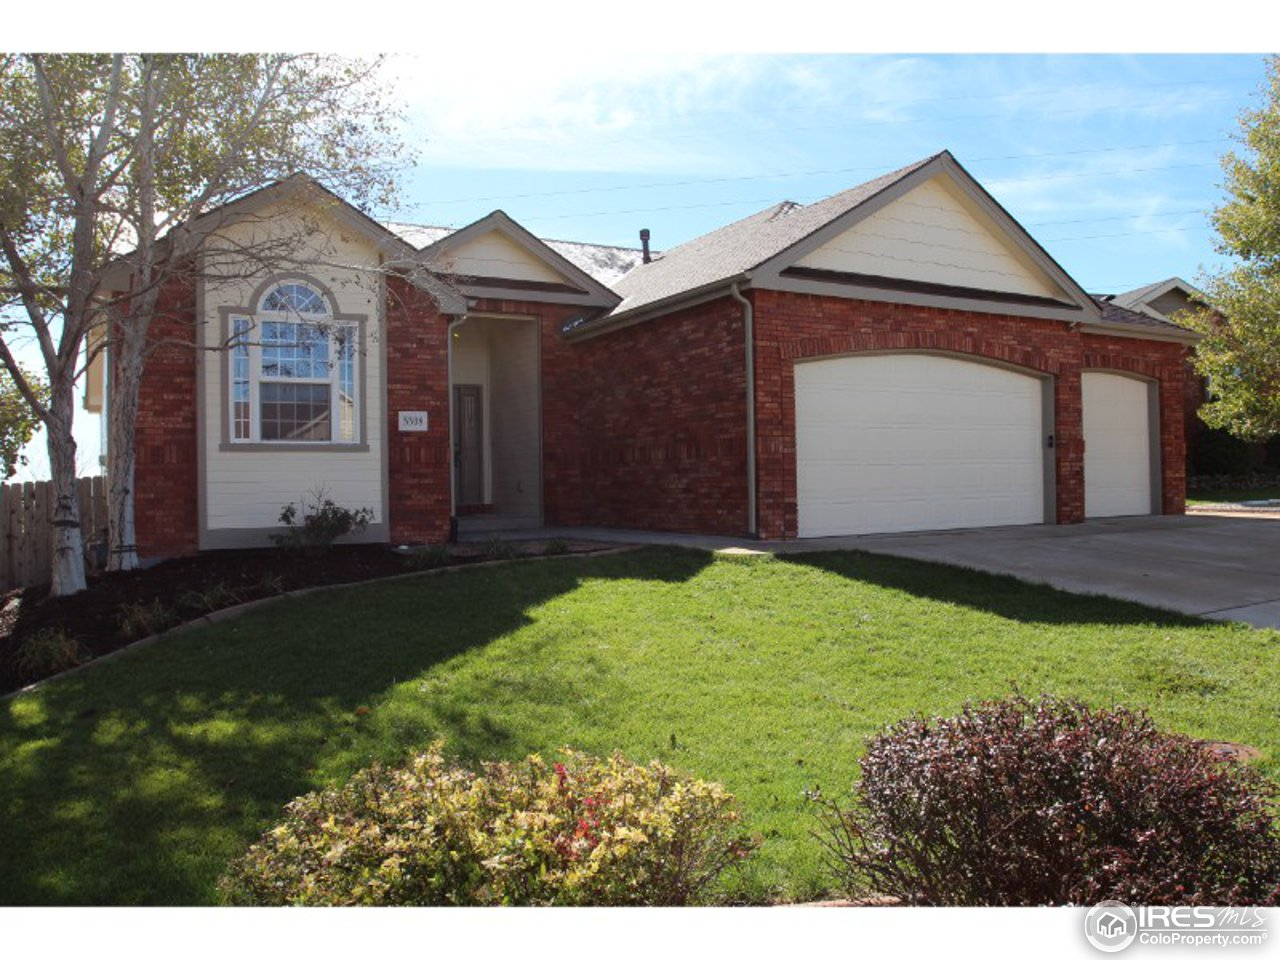 5508 W 32nd St Loveland Home Listings - Team Cook Real Estate